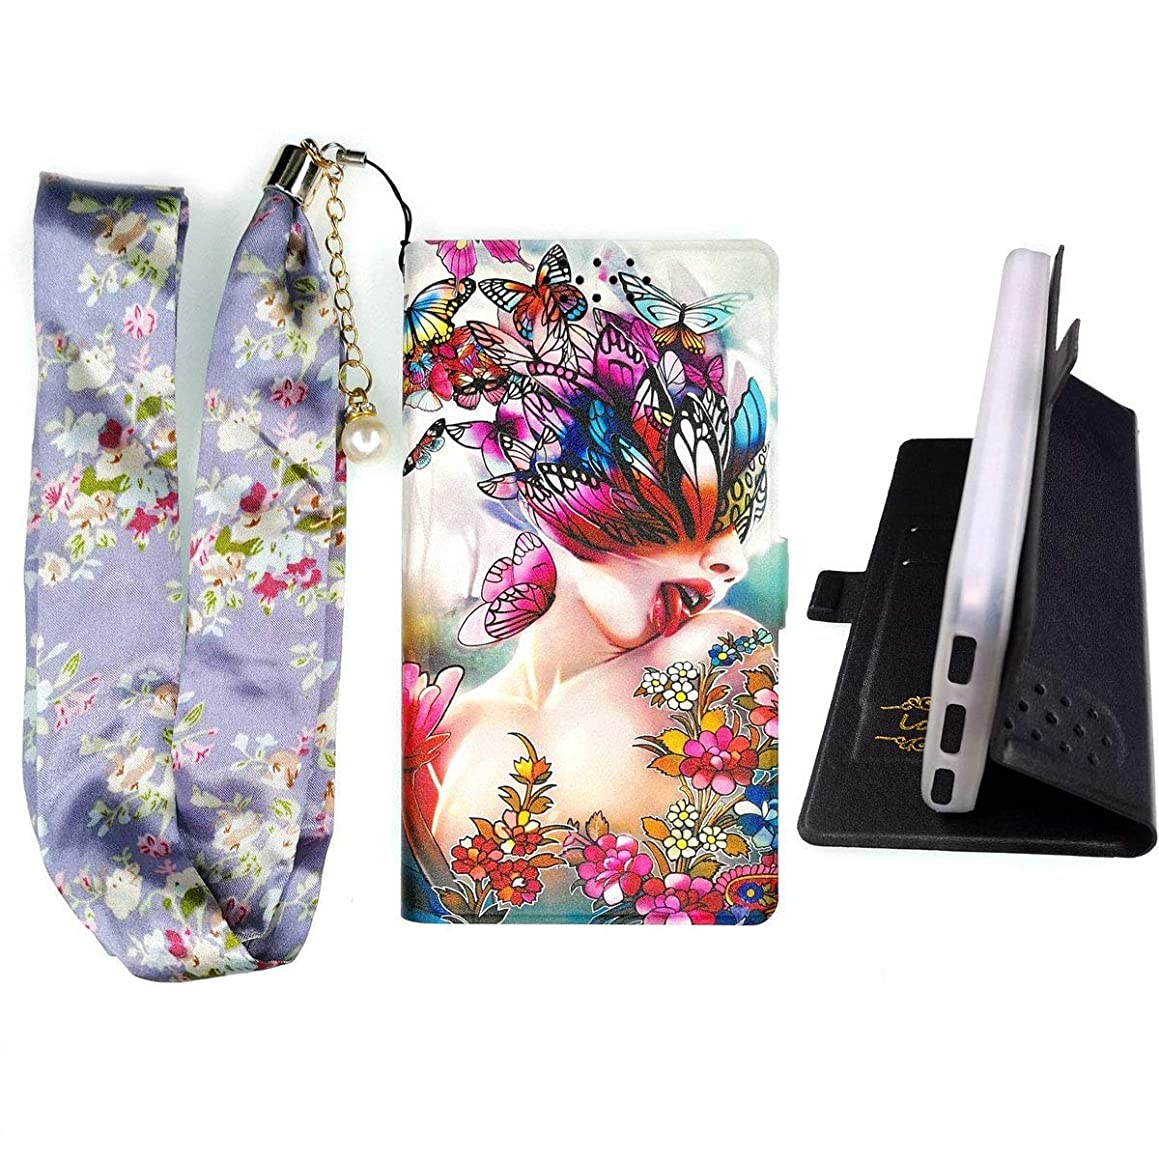 Lovewlb Case for Unimax U504tl Cover Flip PU Leather + Silicone case Fixed HD